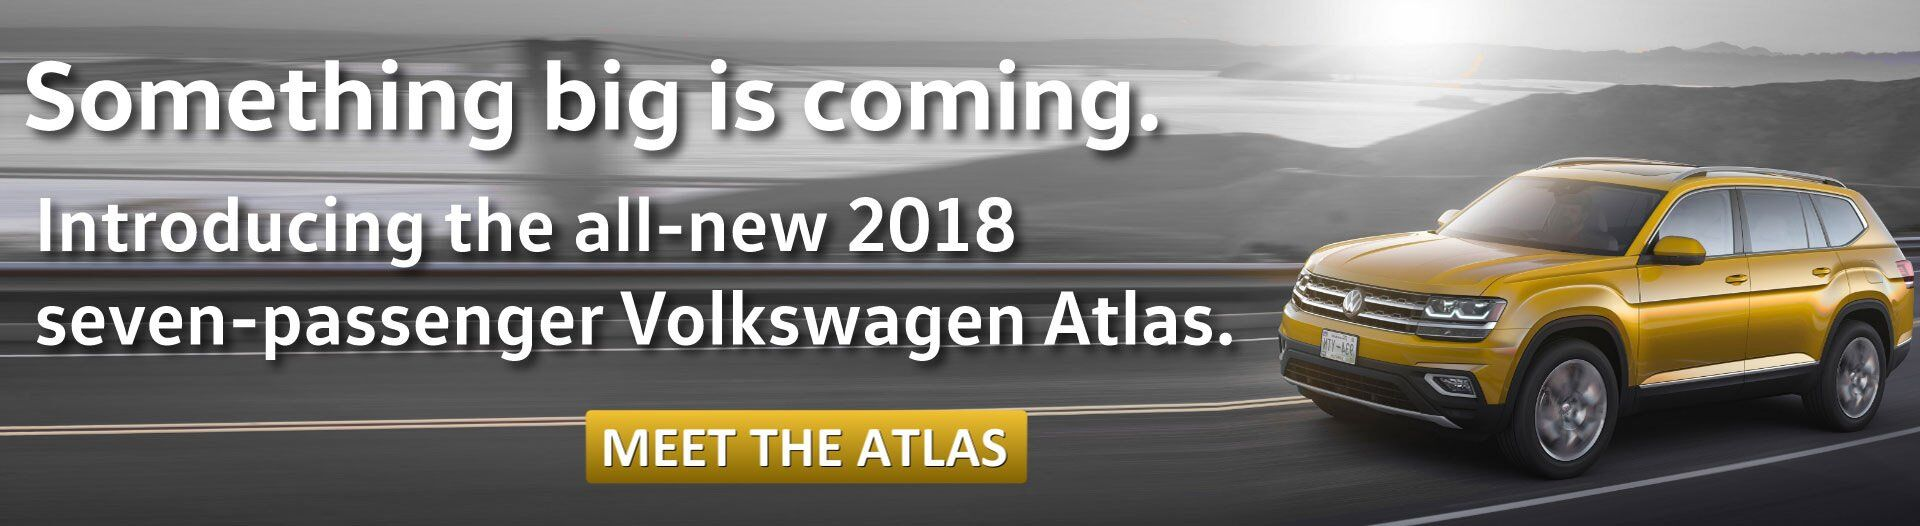 The VW Atlas will be coming to Douglas soon!